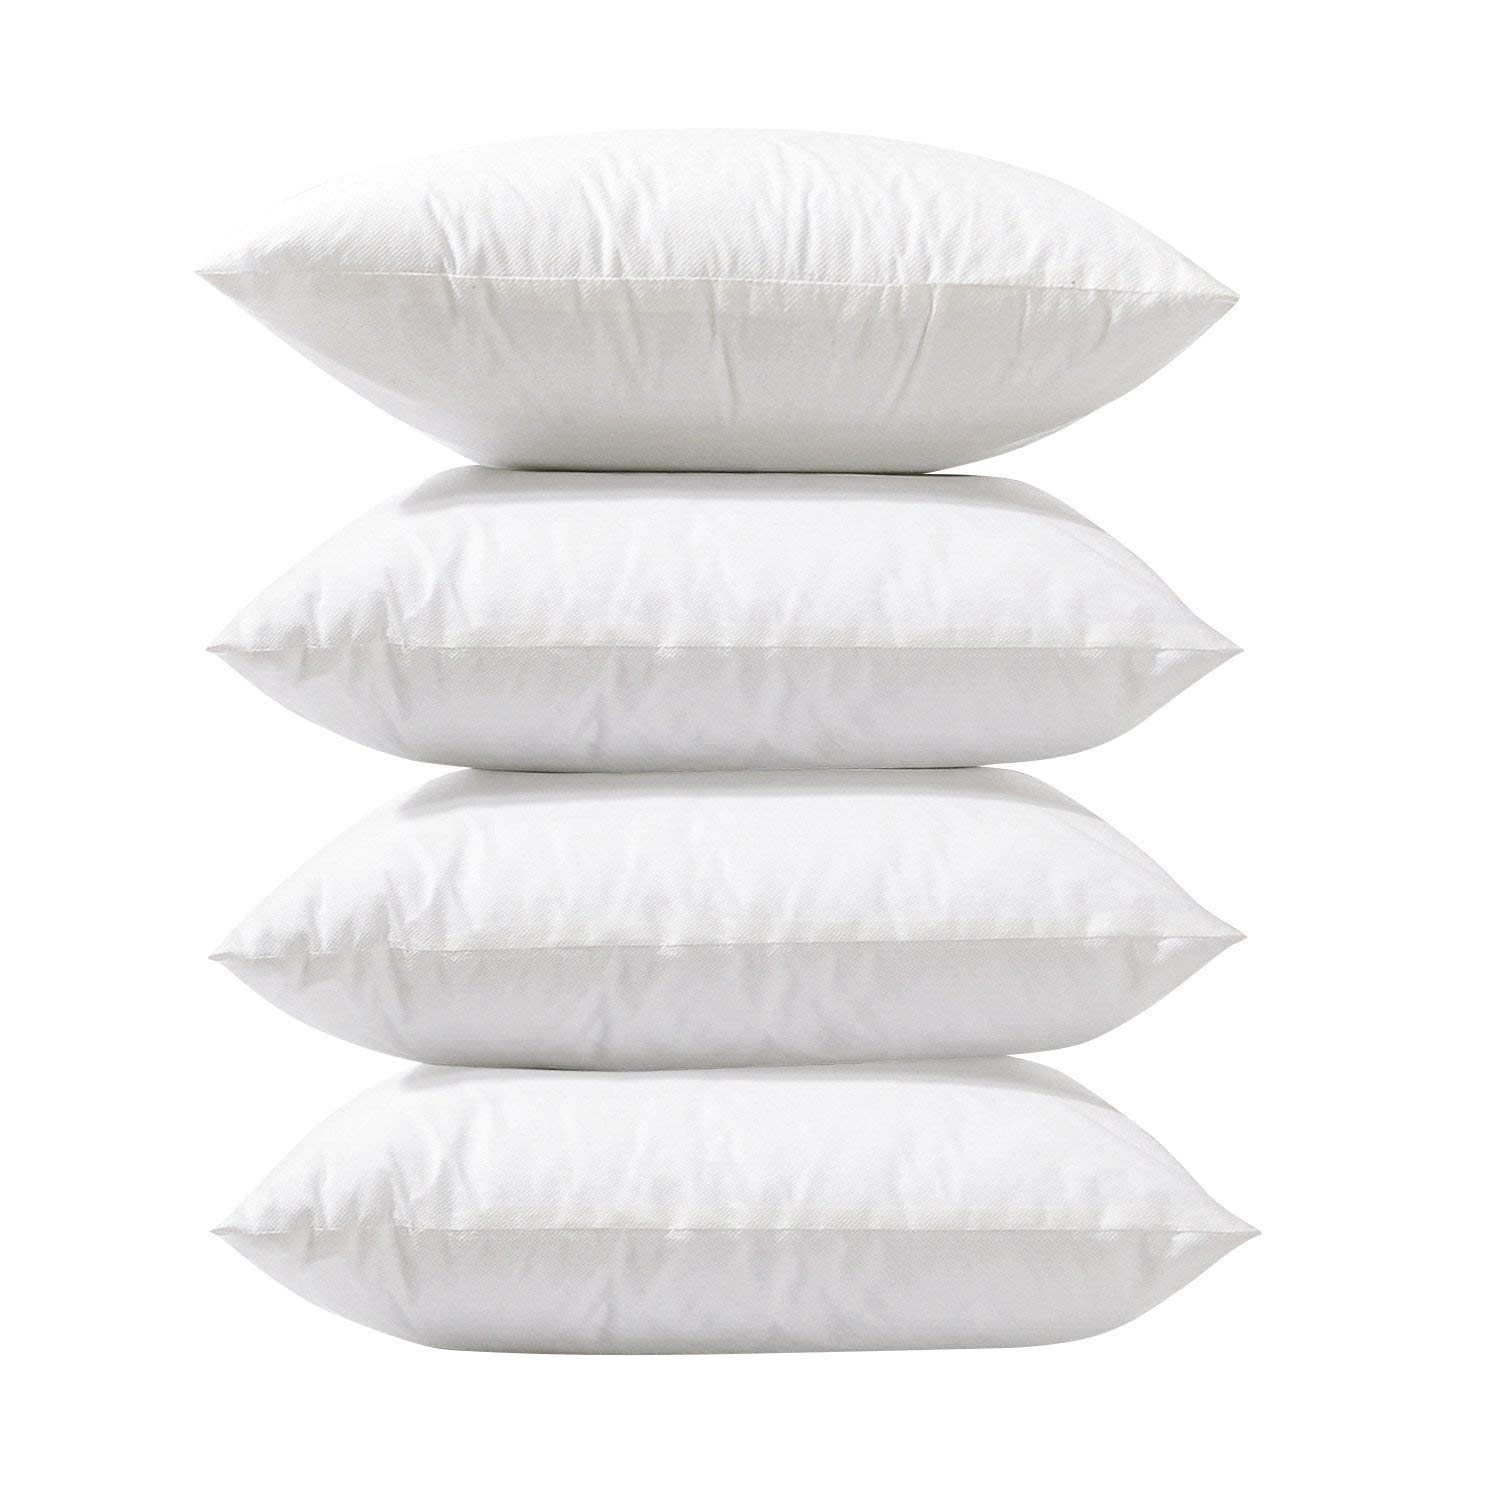 Phantoscope 4 Packs Throw Pillow Inserts Hypoallergenic Square Form Sham Stuffer 18 x 18 inches